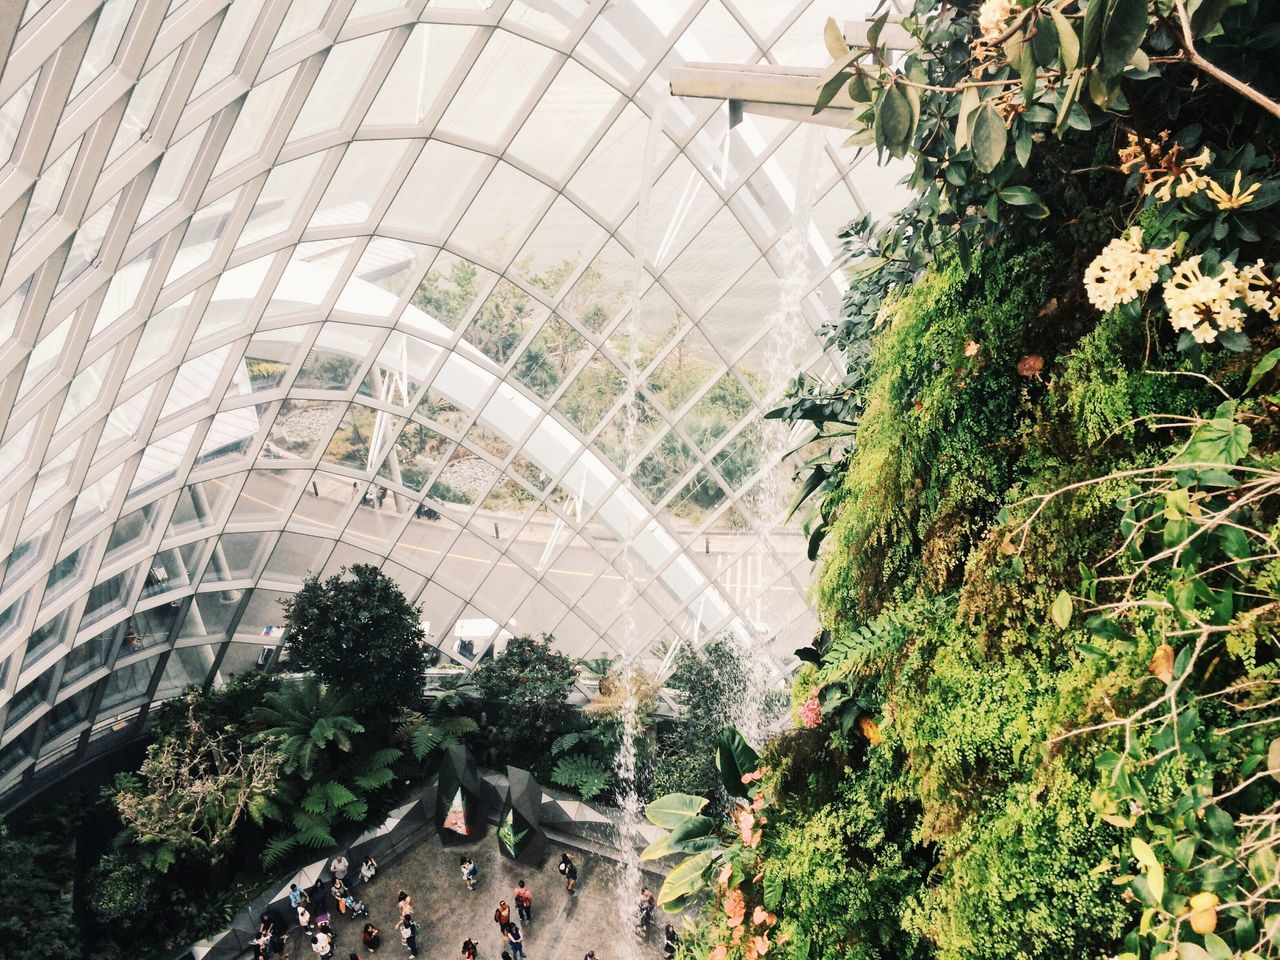 plant, growth, greenhouse, architecture, indoors, leaf, day, nature, tree, plant nursery, built structure, botanical garden, modern, no people, close-up